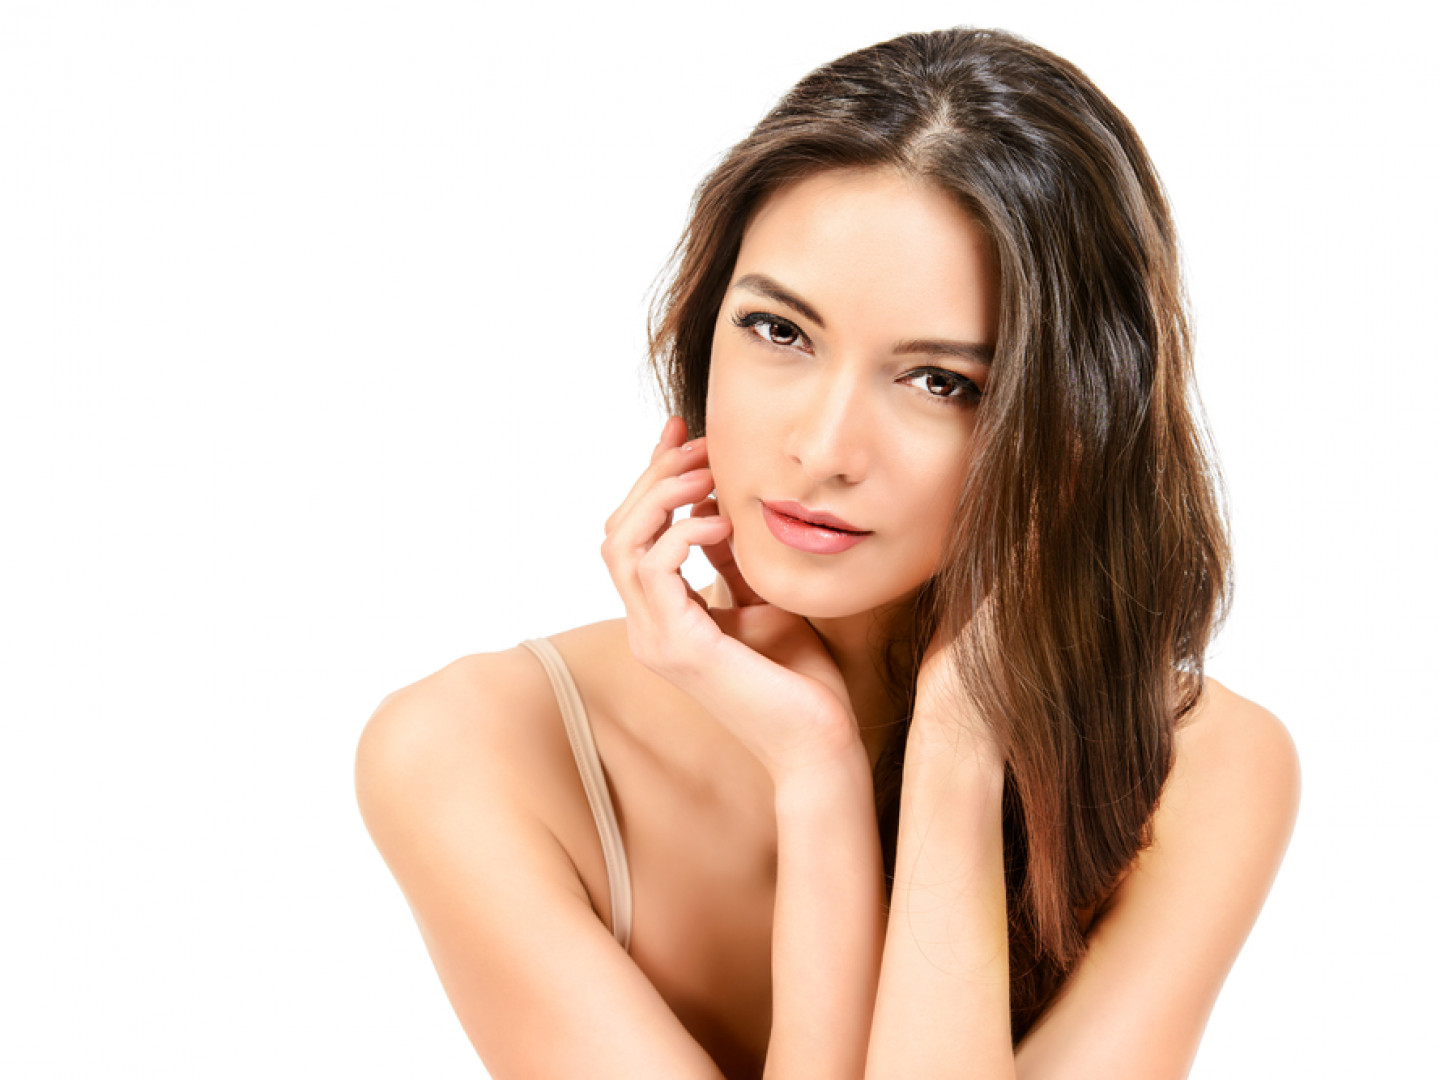 Discover how Sculptra can help you look your best